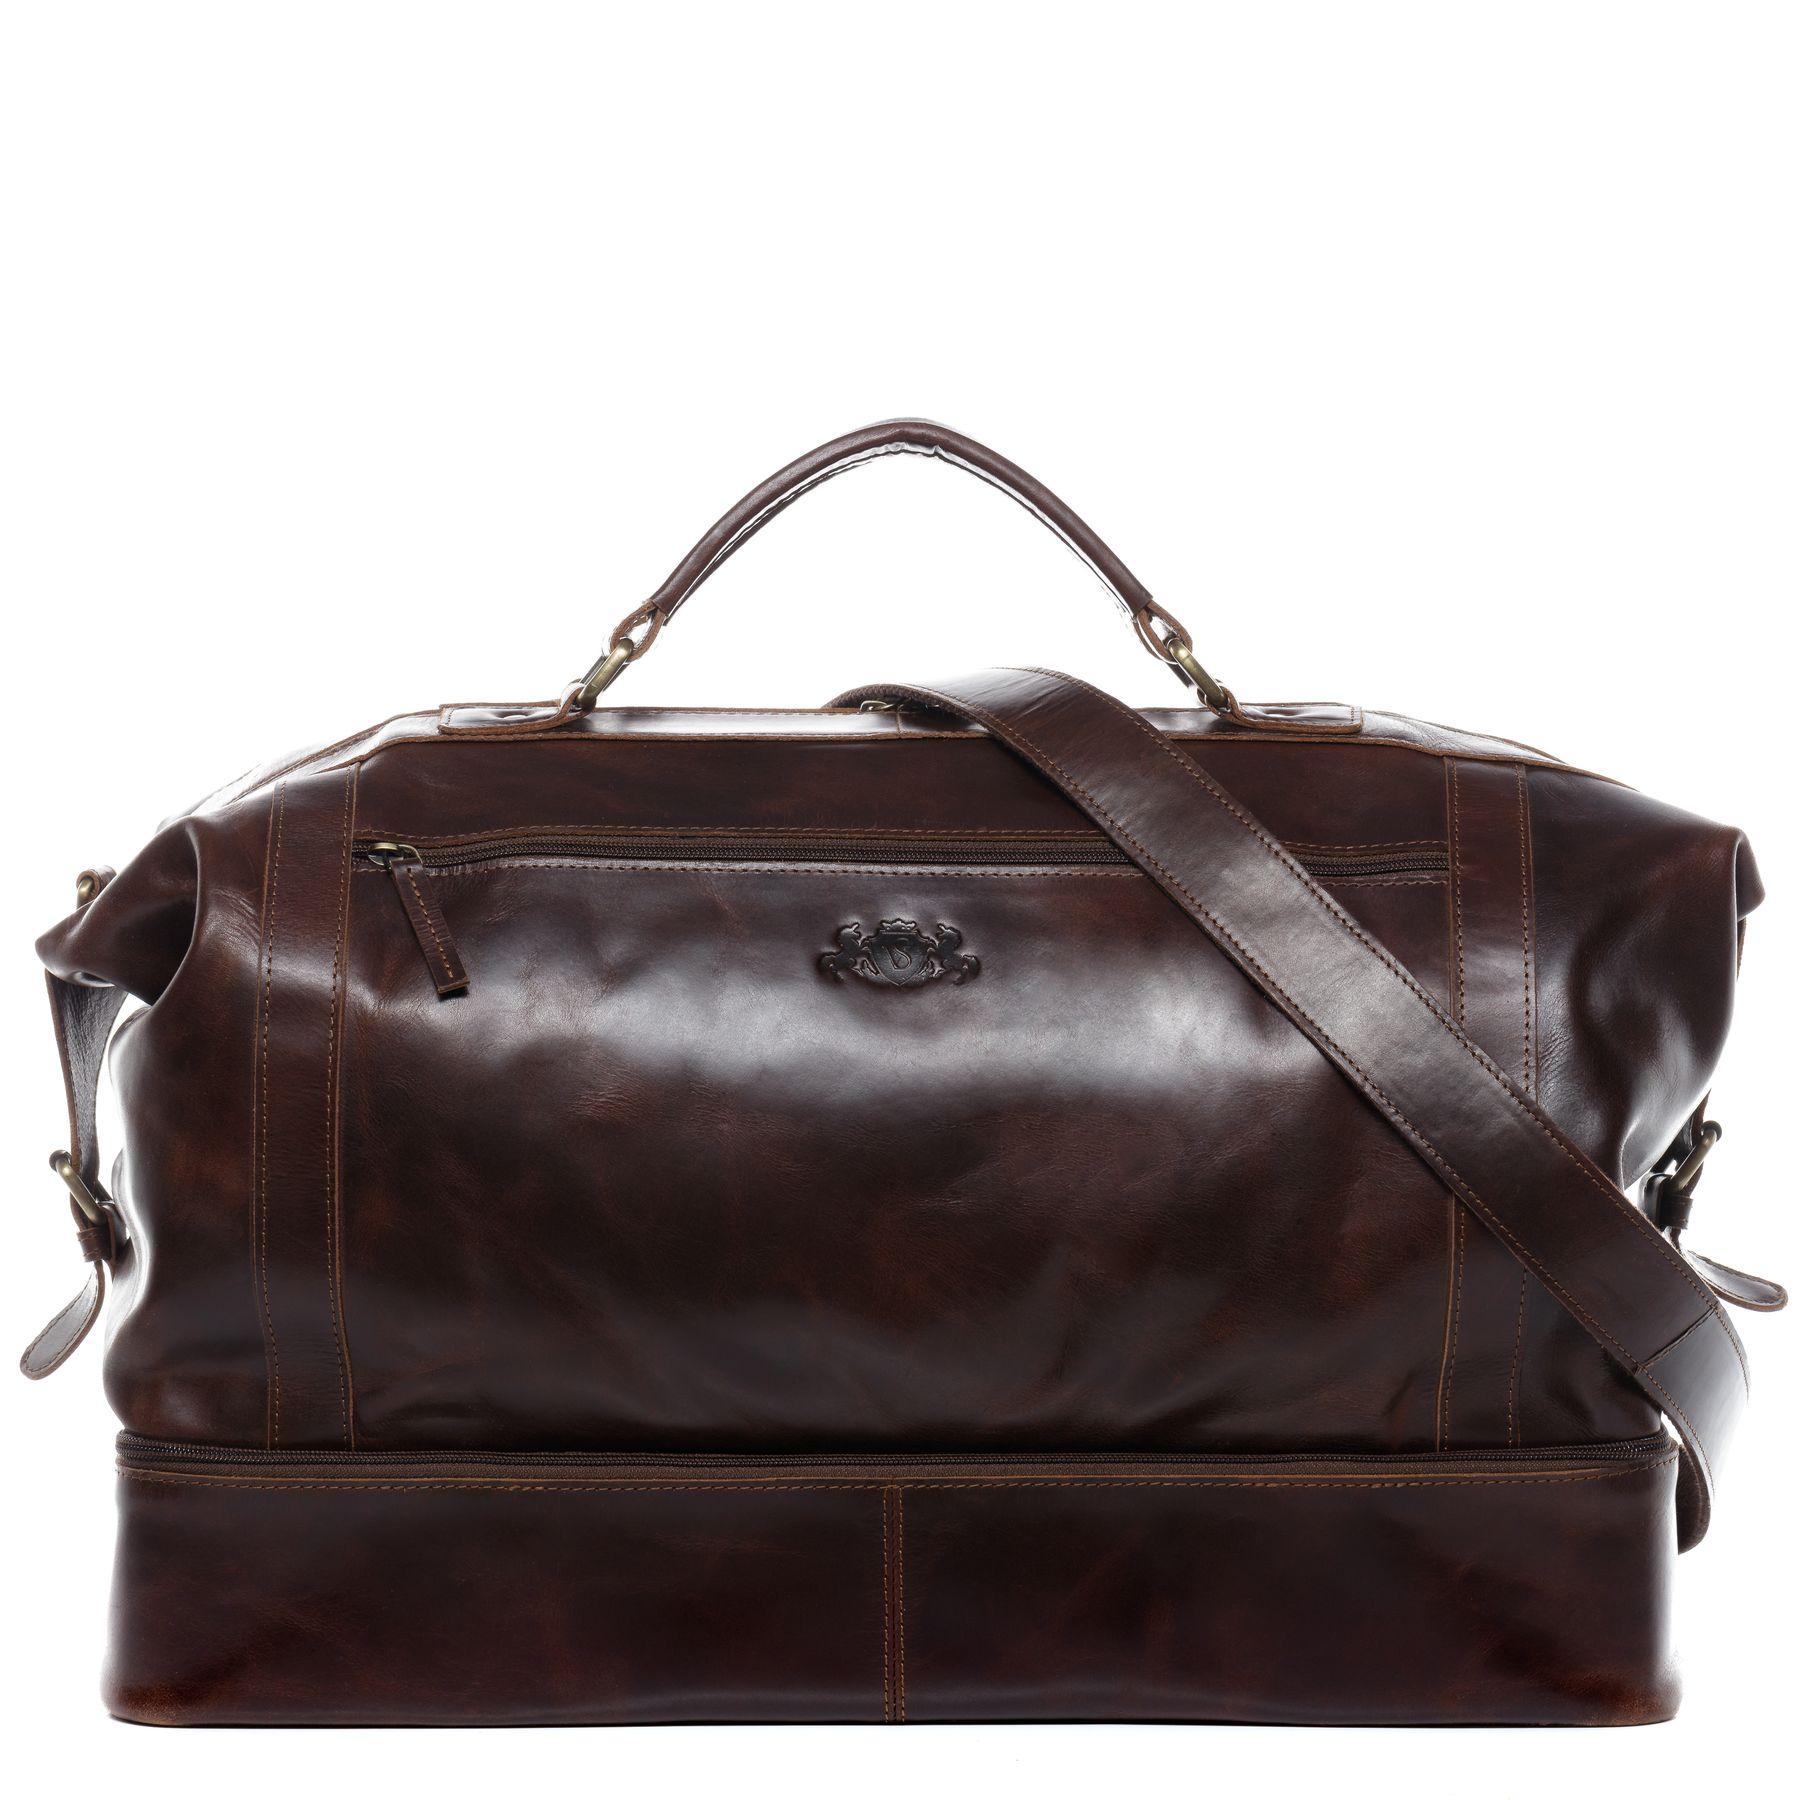 SID   VAIN travel bag smart compartment Natural Leather BRIGHTON  brown-cognac weekender overnight duffle bag Travel Bags Sports bags e1aebbeff40e